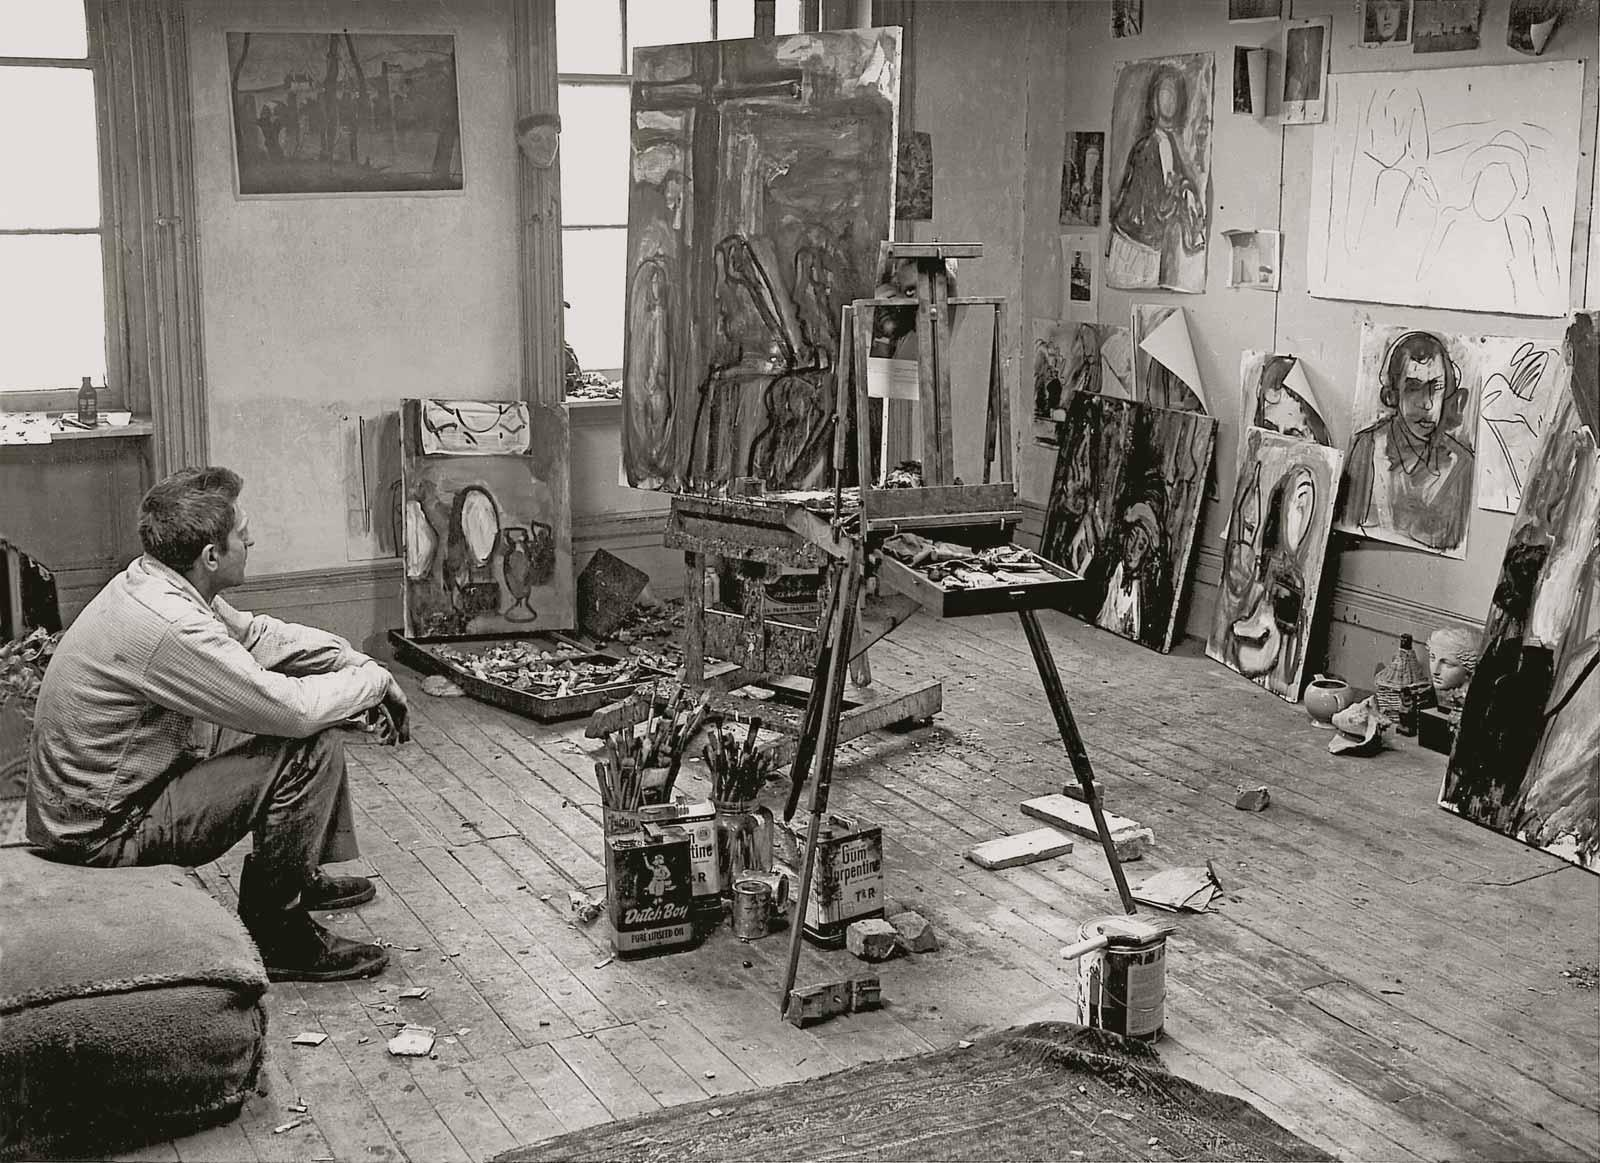 Robert de Niro, Sr. in his studio, 1958.